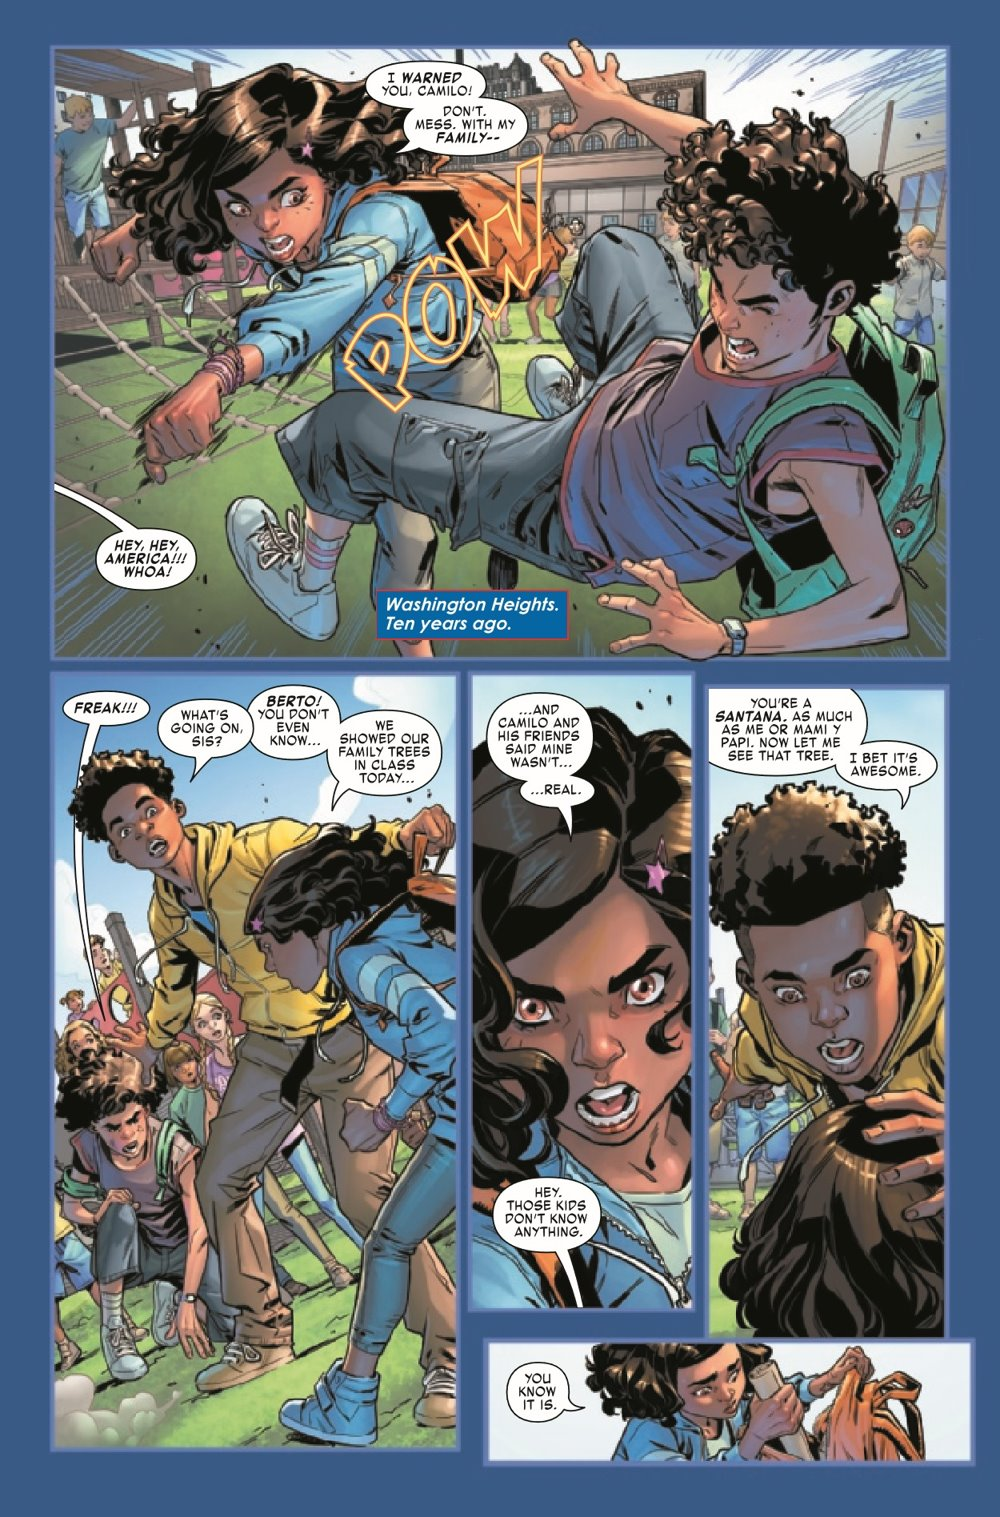 AMERCHAVEZUSA2021002_Preview-3 ComicList Previews: AMERICA CHAVEZ MADE IN THE U.S.A. #2 (OF 5)